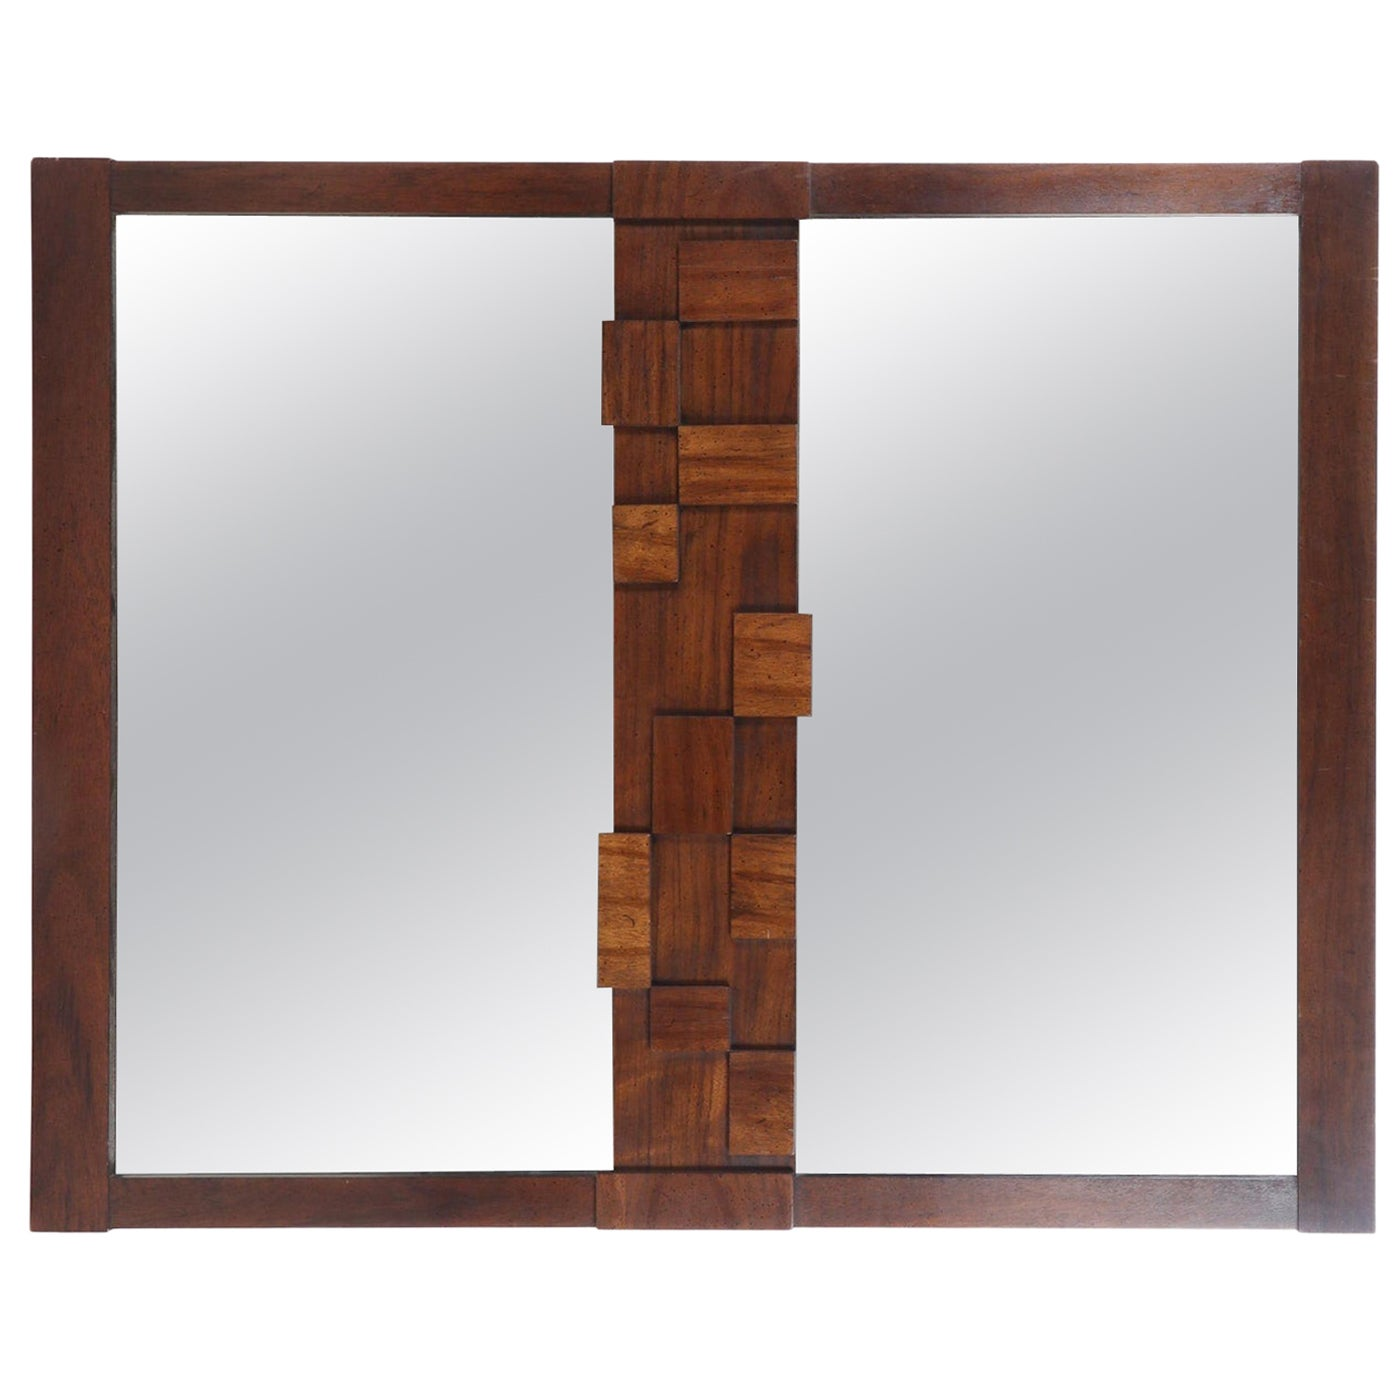 Large Mid-Century Modernist Brutalist Double Mirror by Lane Furniture